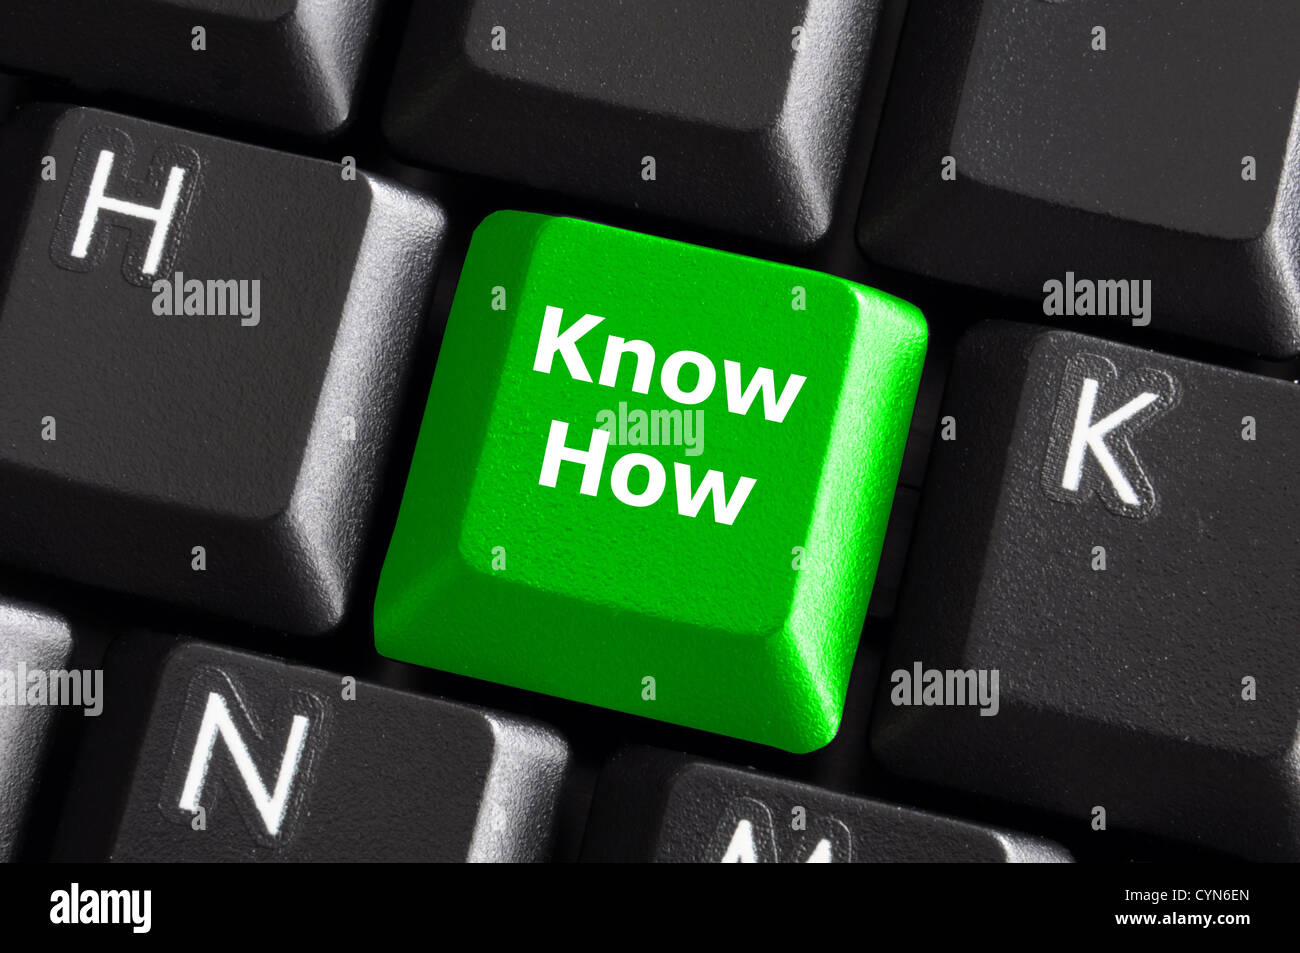 know how knowledge or education concept with green button on computer keyboard - Stock Image